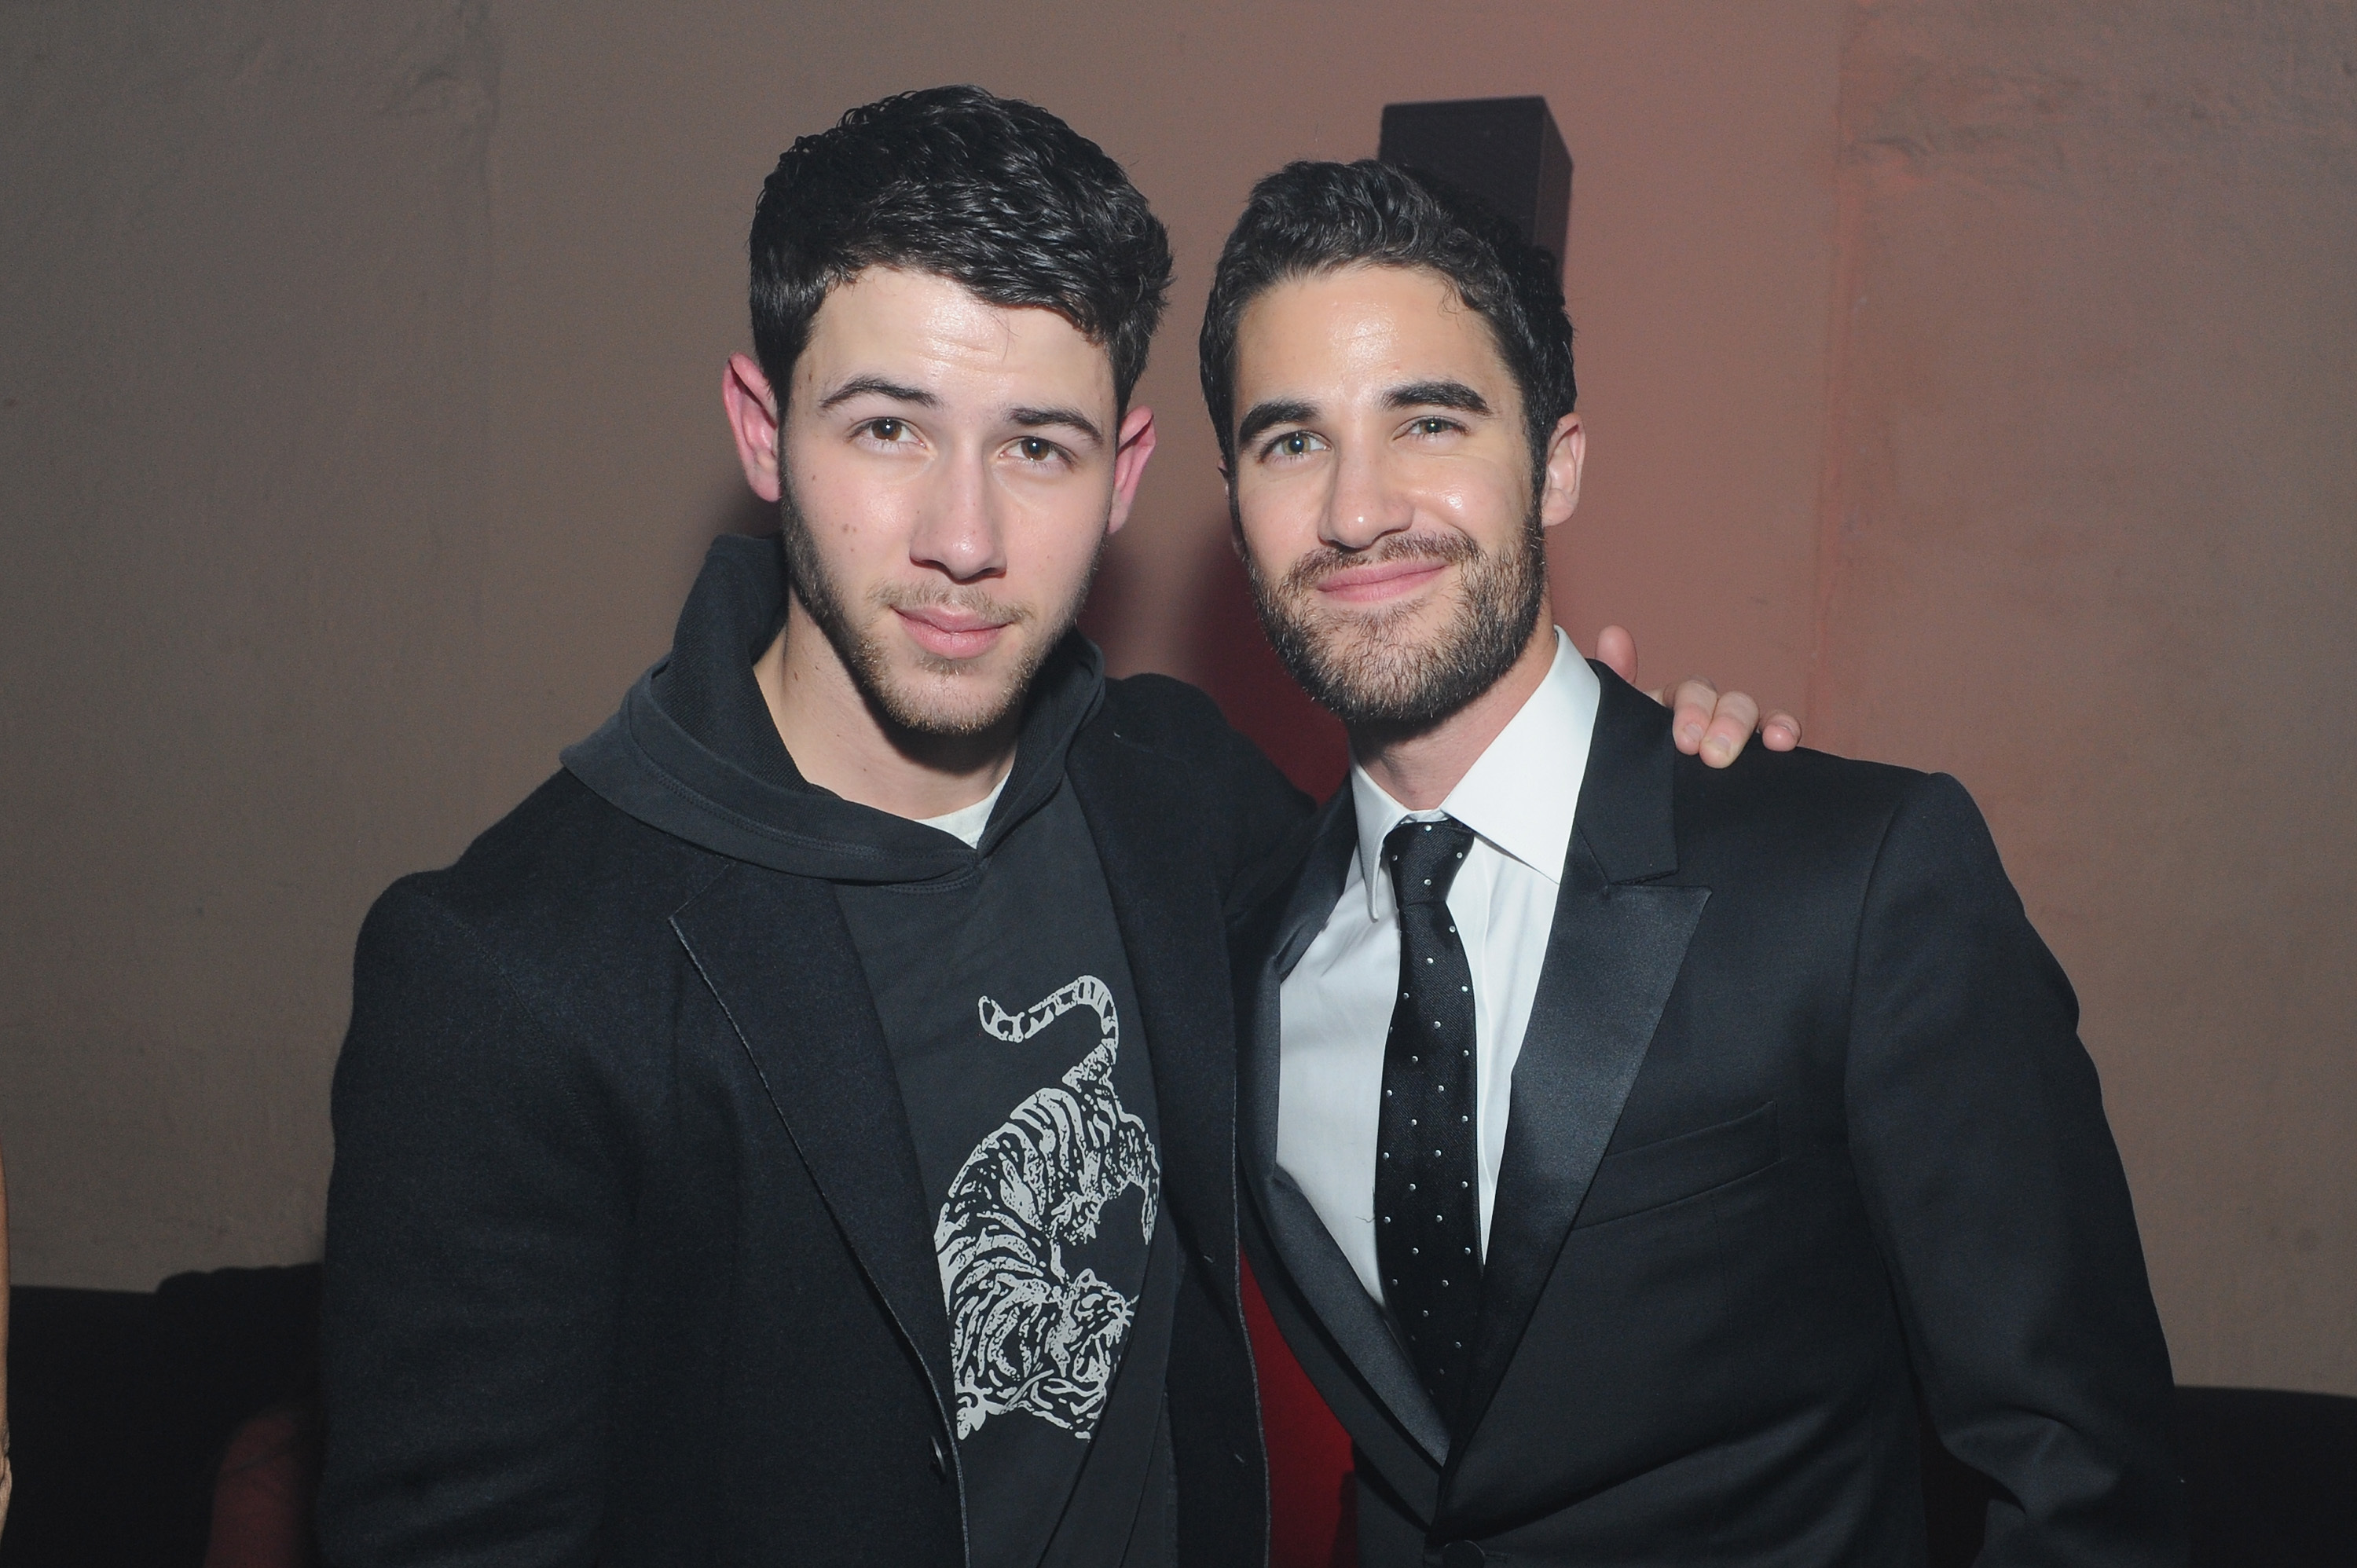 Nick Jonas and Darren Criss attend the John Varvatos x Nick Jonas launch party presented by Stillhouse Whiskey at the Angel Orensanz Foundation in New York City on Jan. 27, 2018.